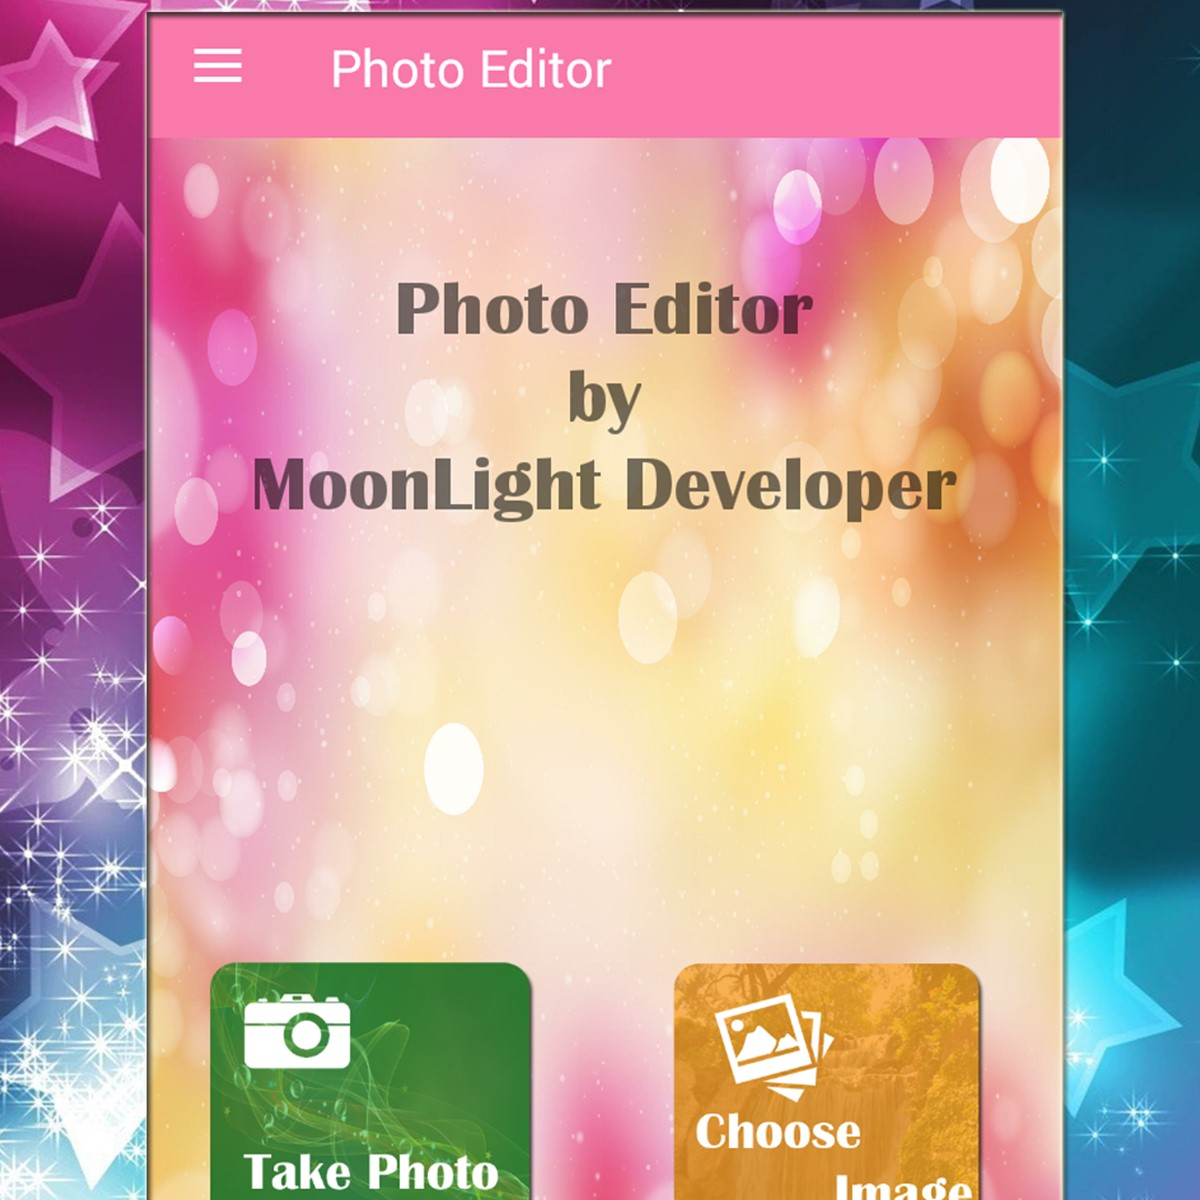 Moonlight Photo Editor Alternatives and Similar Apps - AlternativeTo net